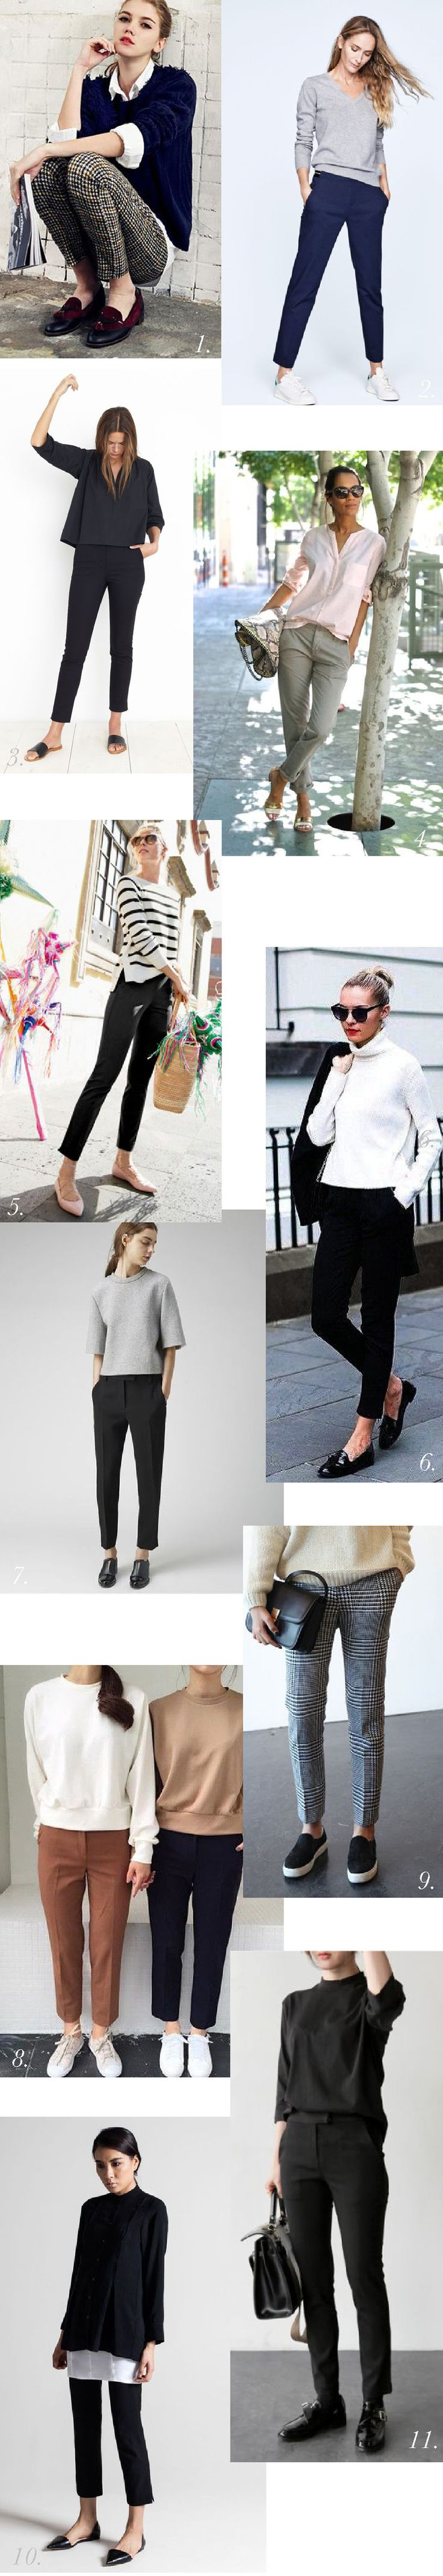 Sasha Trousers Pattern // Styling Inspiration // Outfits for pants or trousers // Work outfits, office outfits